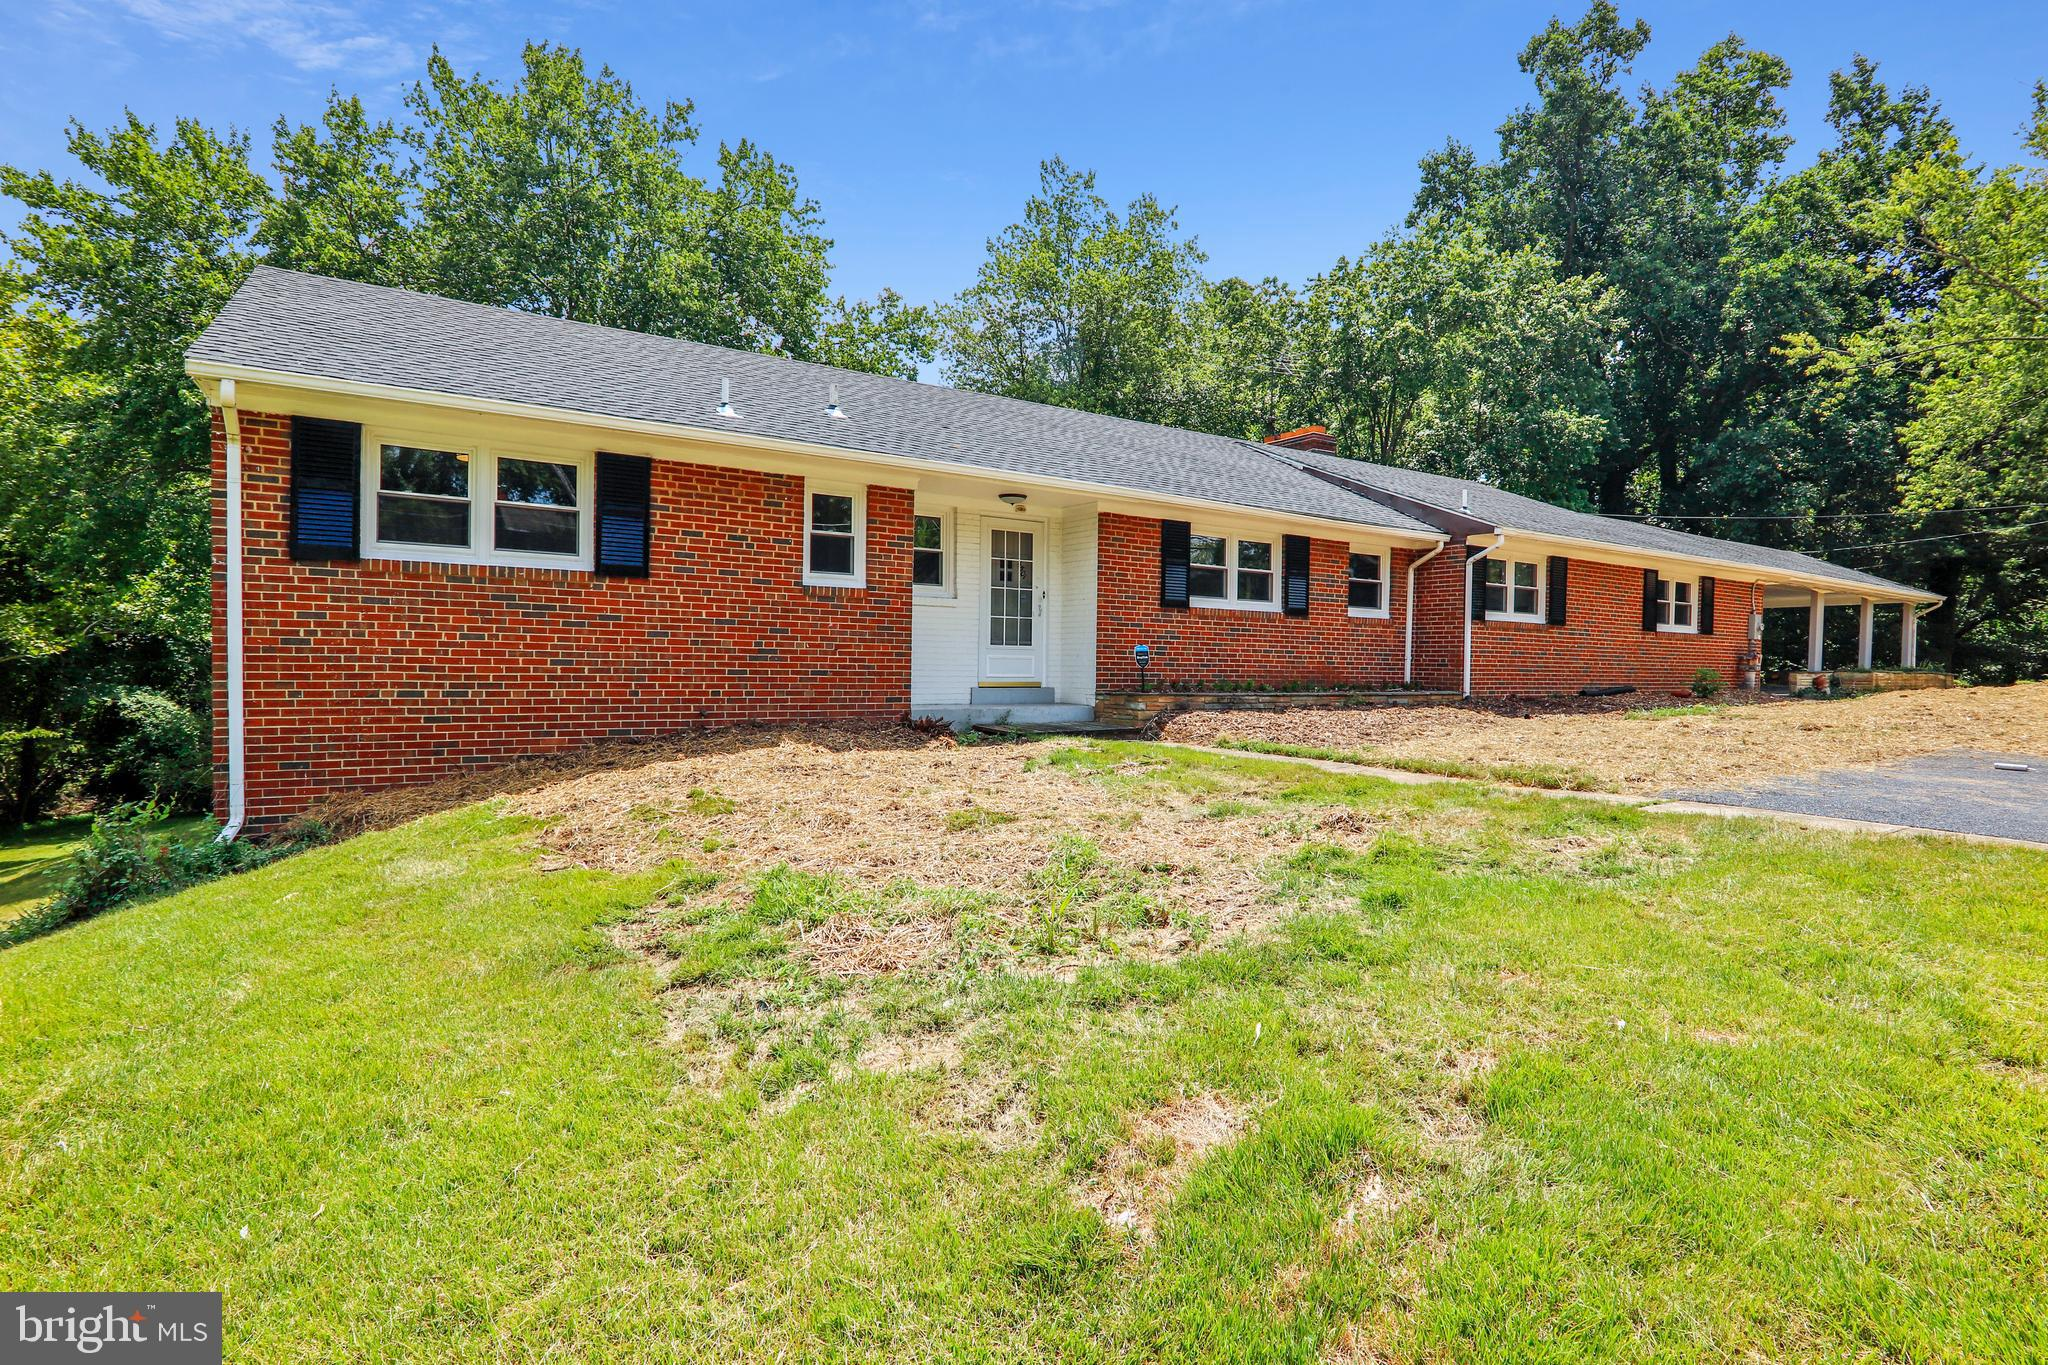 4501 HENDERSON ROAD, TEMPLE HILLS, MD 20748